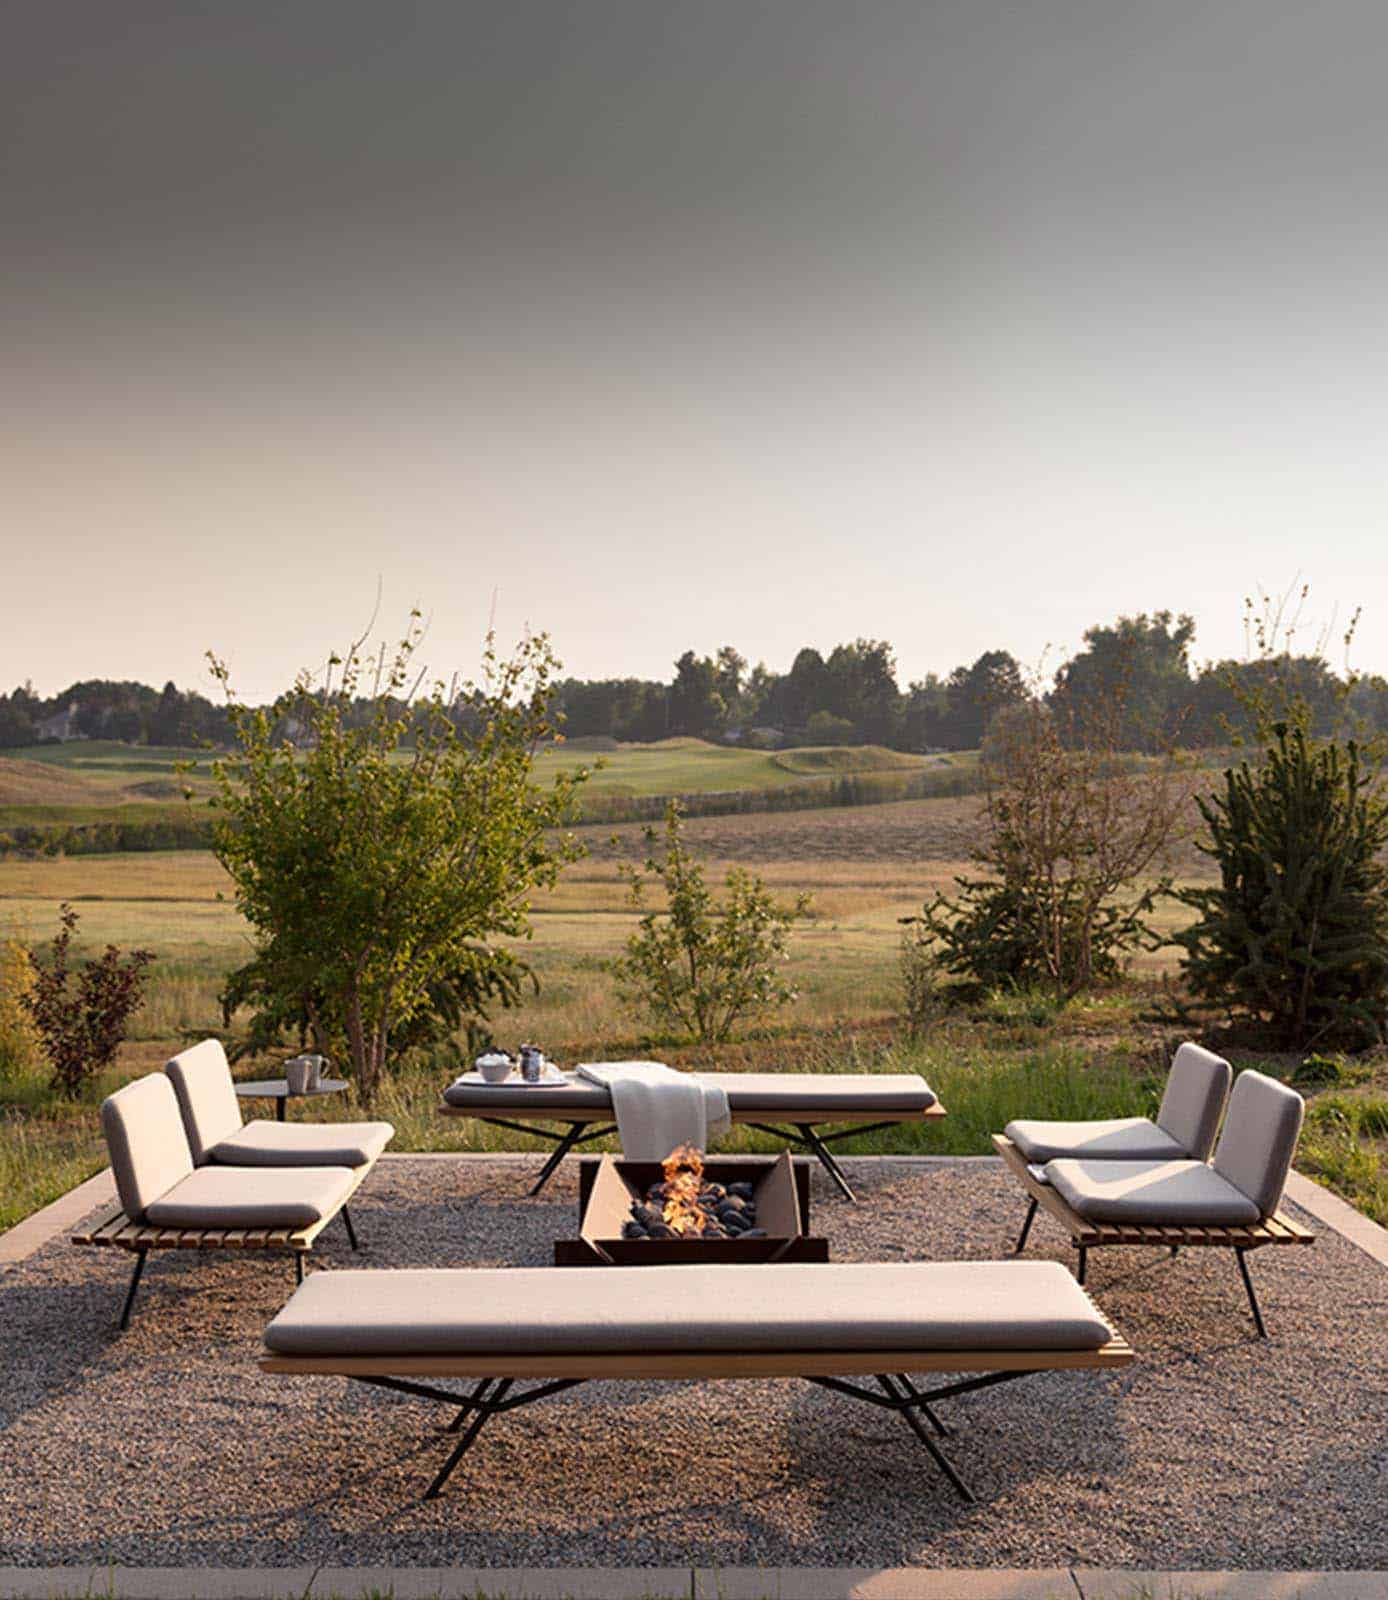 33 Fabulous Ideas For Creating Beautiful Outdoor Living Spaces on Beautiful Outdoor Living Spaces id=71104